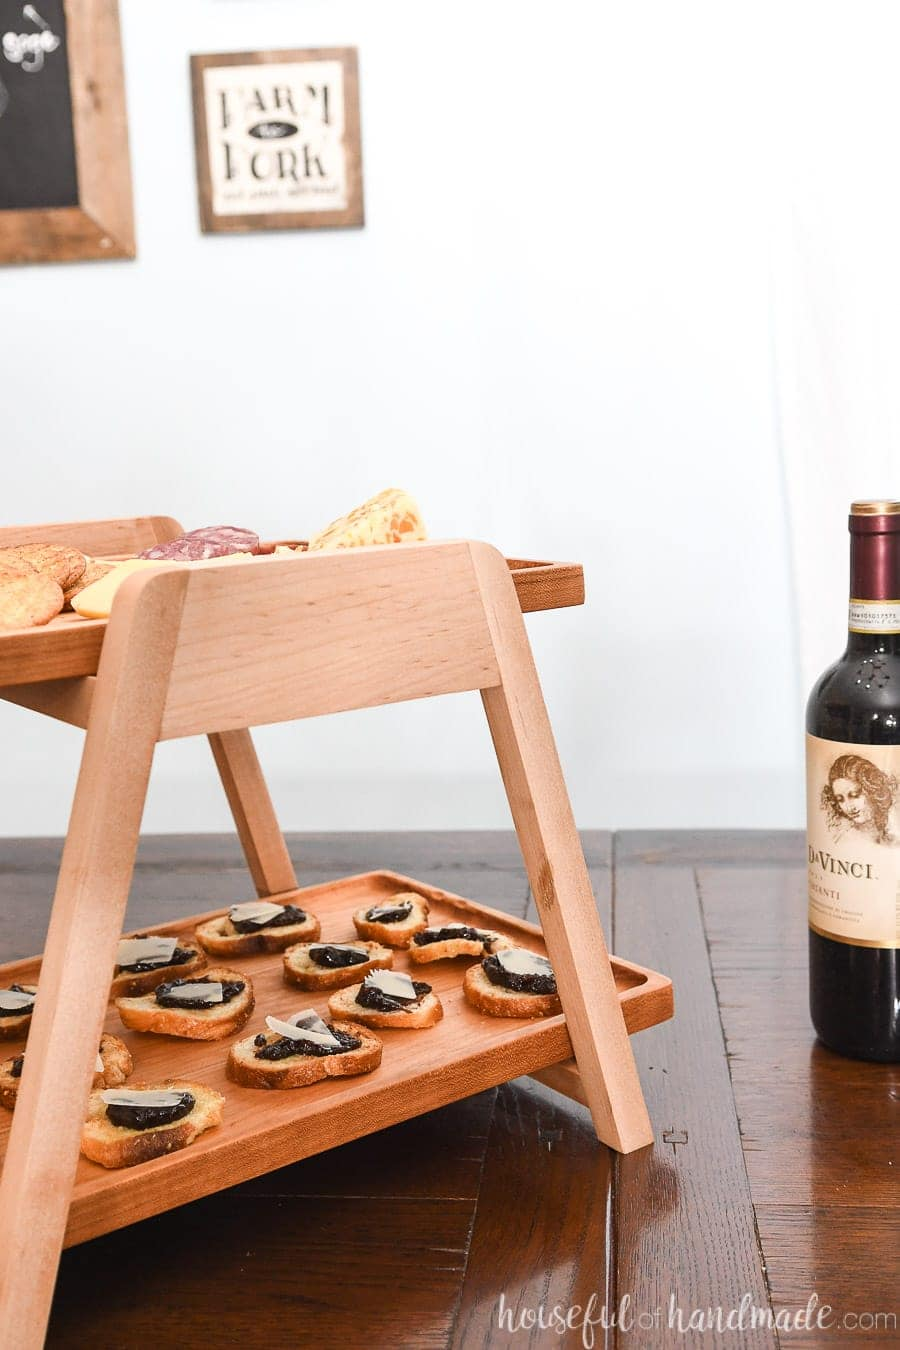 Two tier wood serving tray with appetizers on it next to a wine bottle.